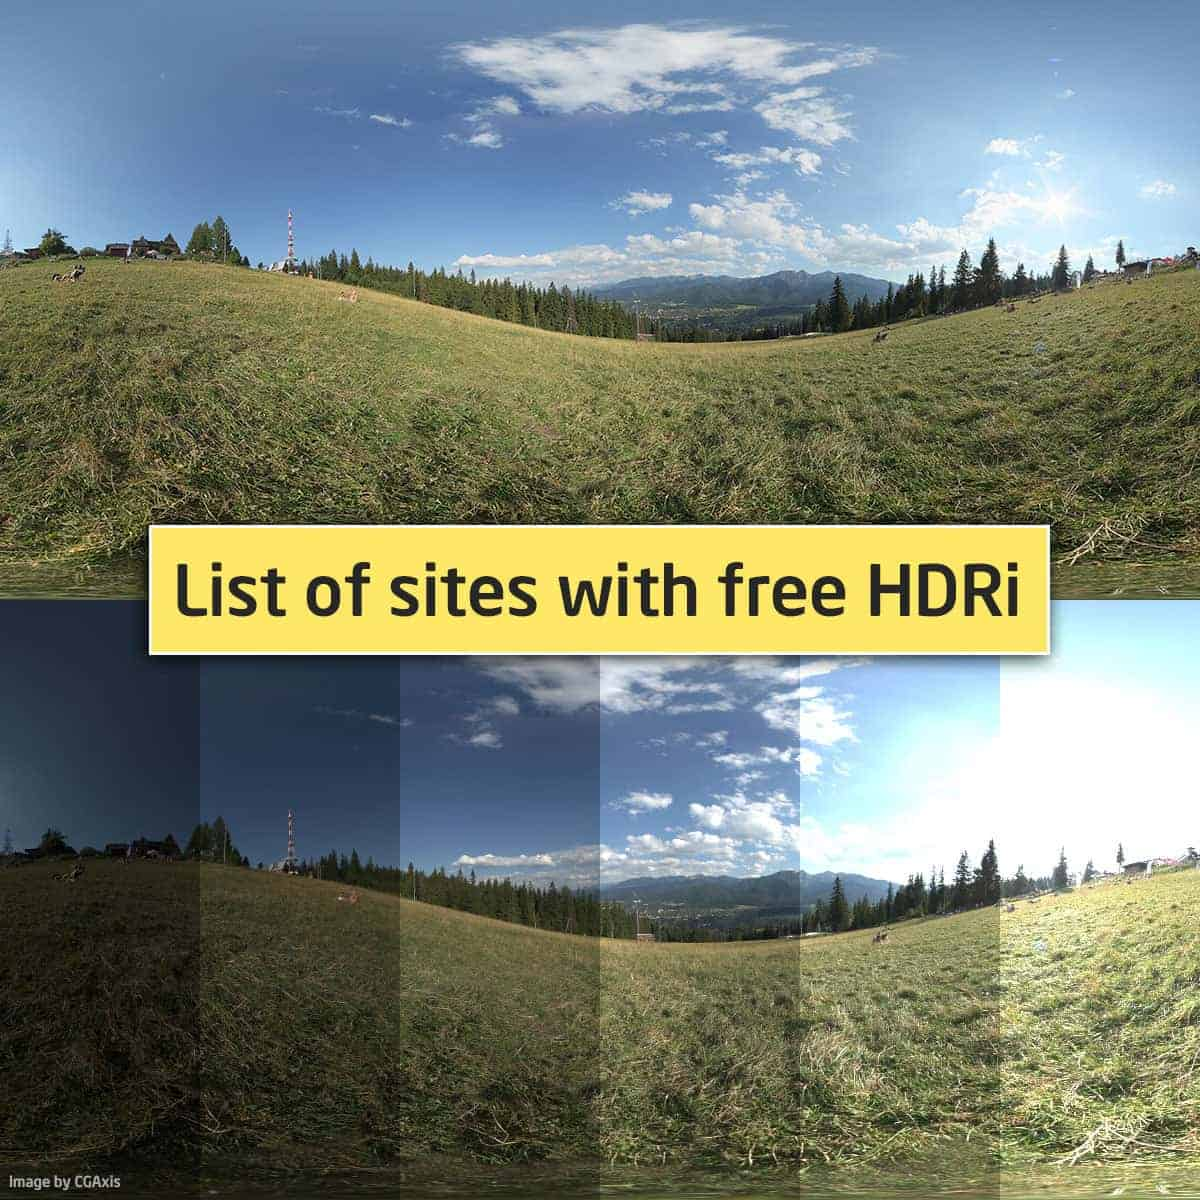 List of sites with free HDRi